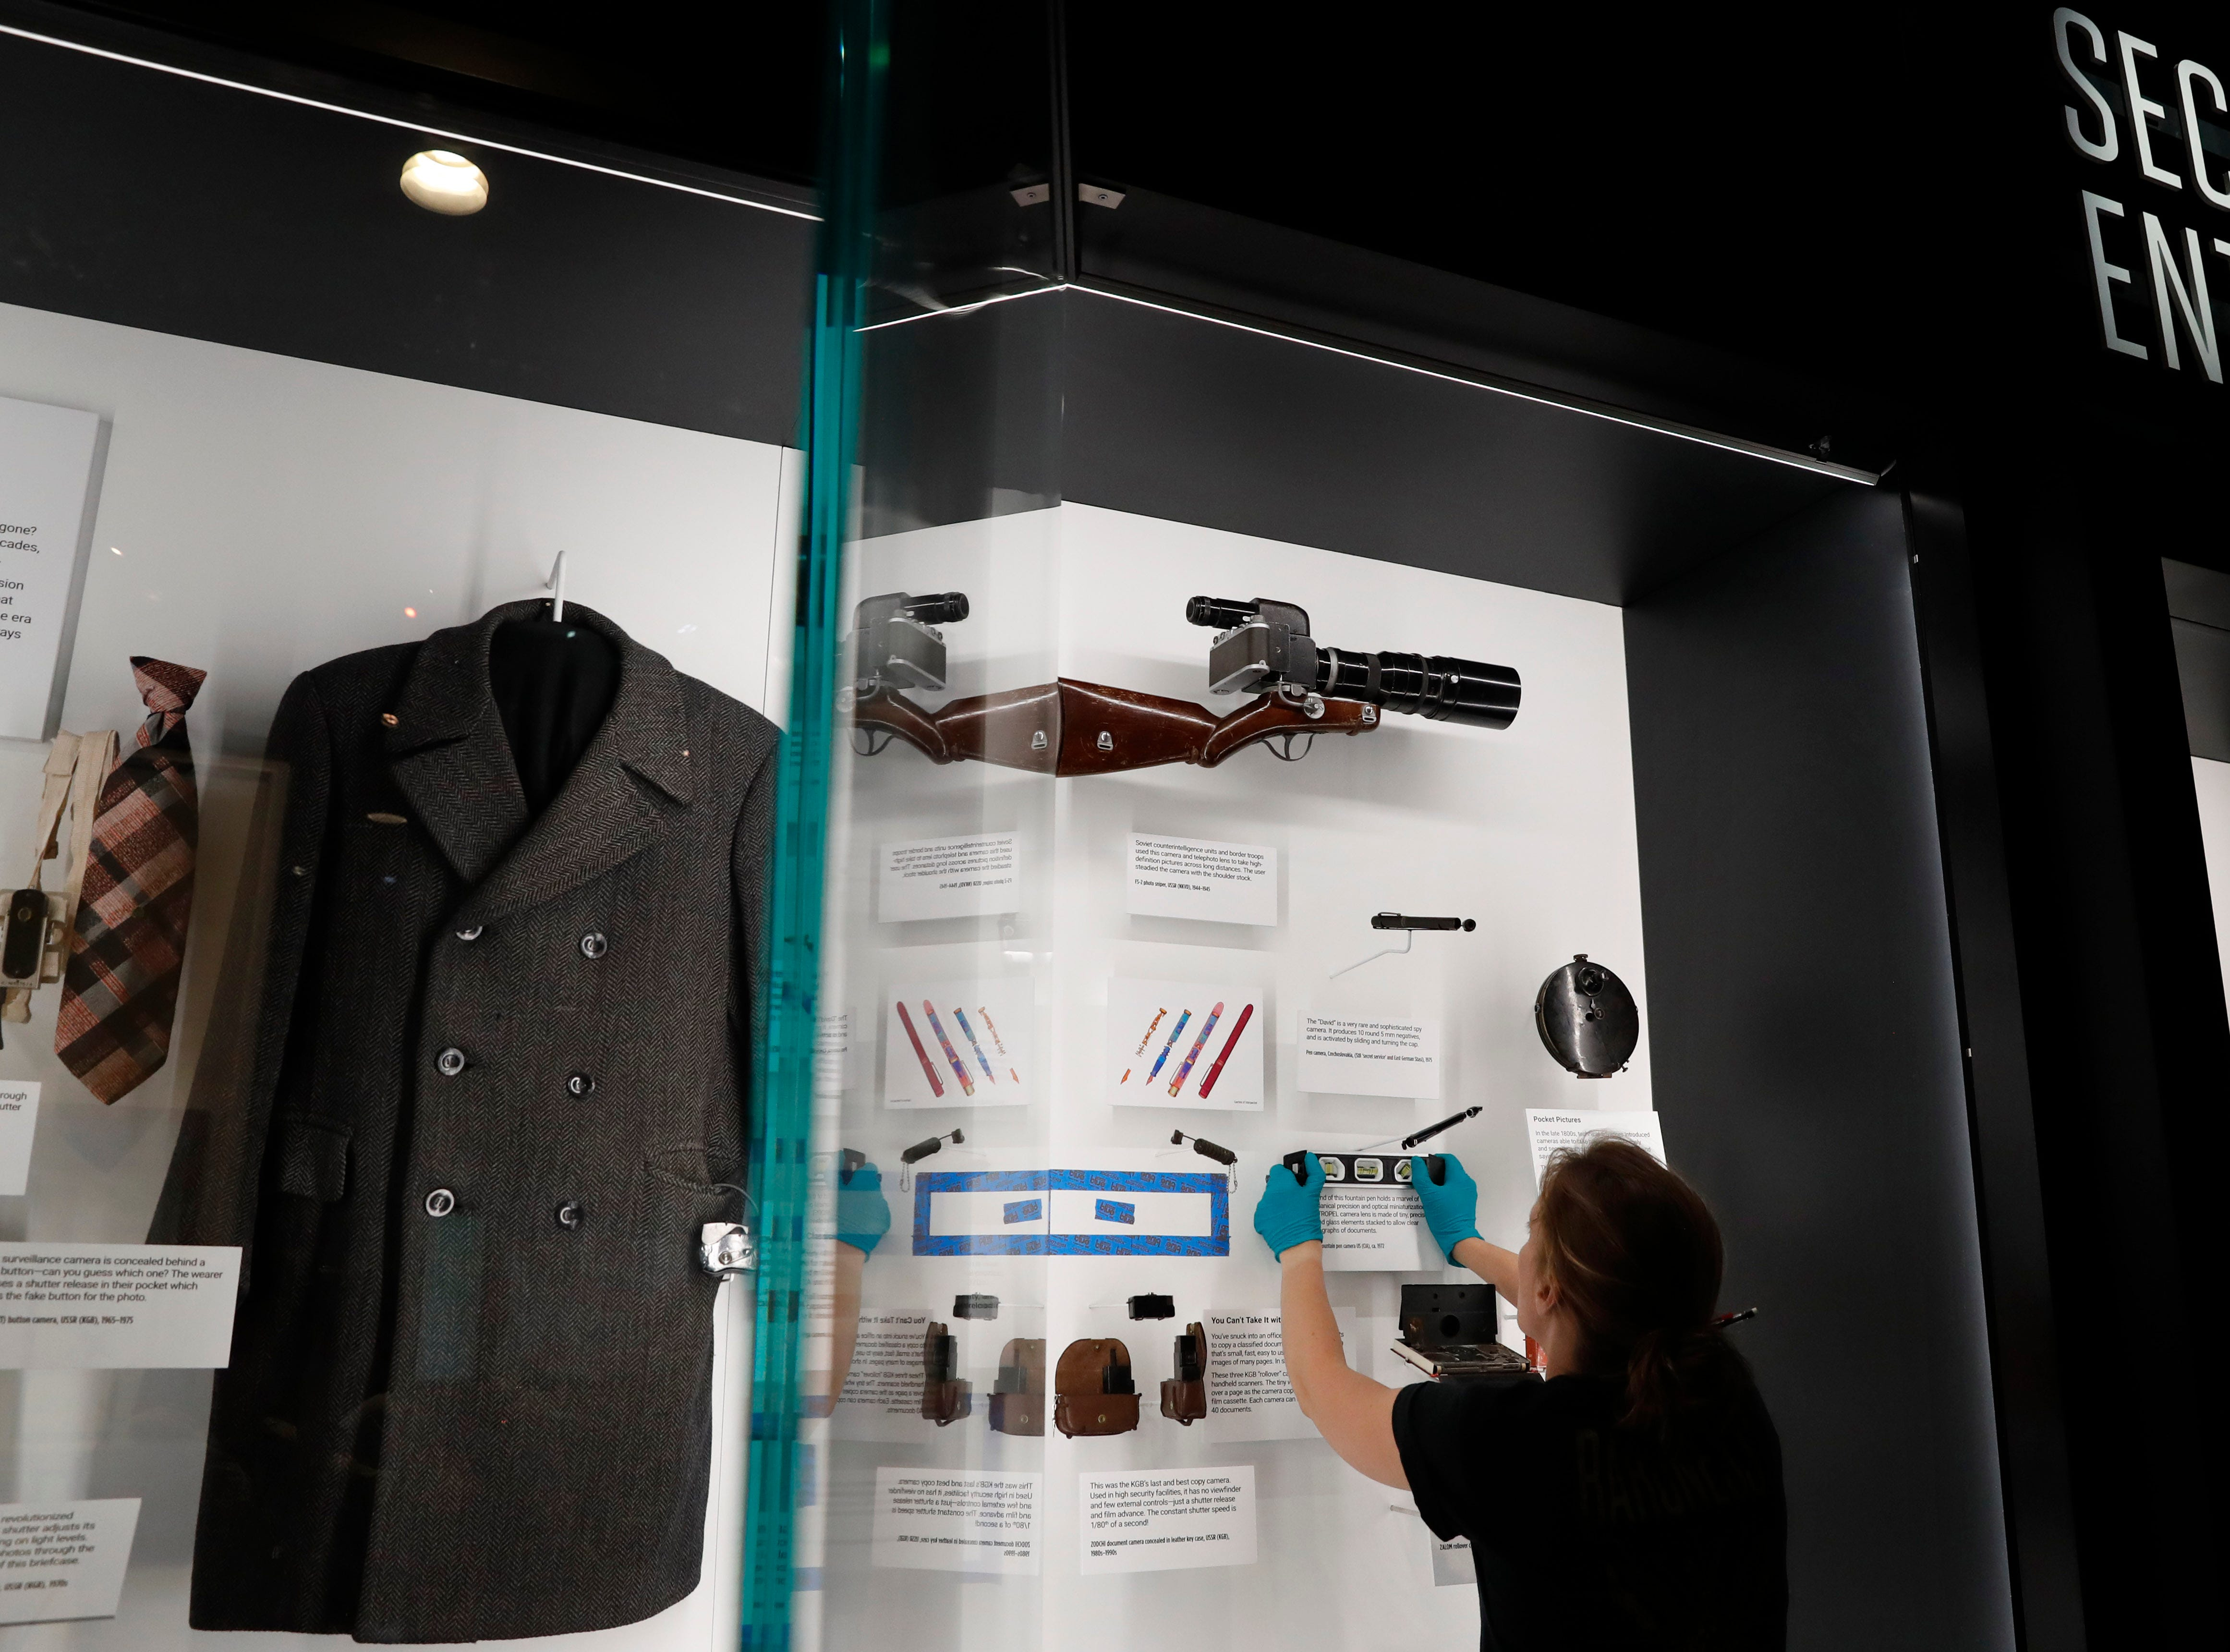 Exhibits are installed in the new International Spy Museum in Washington, which offers a window into covert operations, counterterrorism, intelligence analysis, cyber espionage, intelligence failures and even highly debated legal and ethical issues, such as waterboarding.